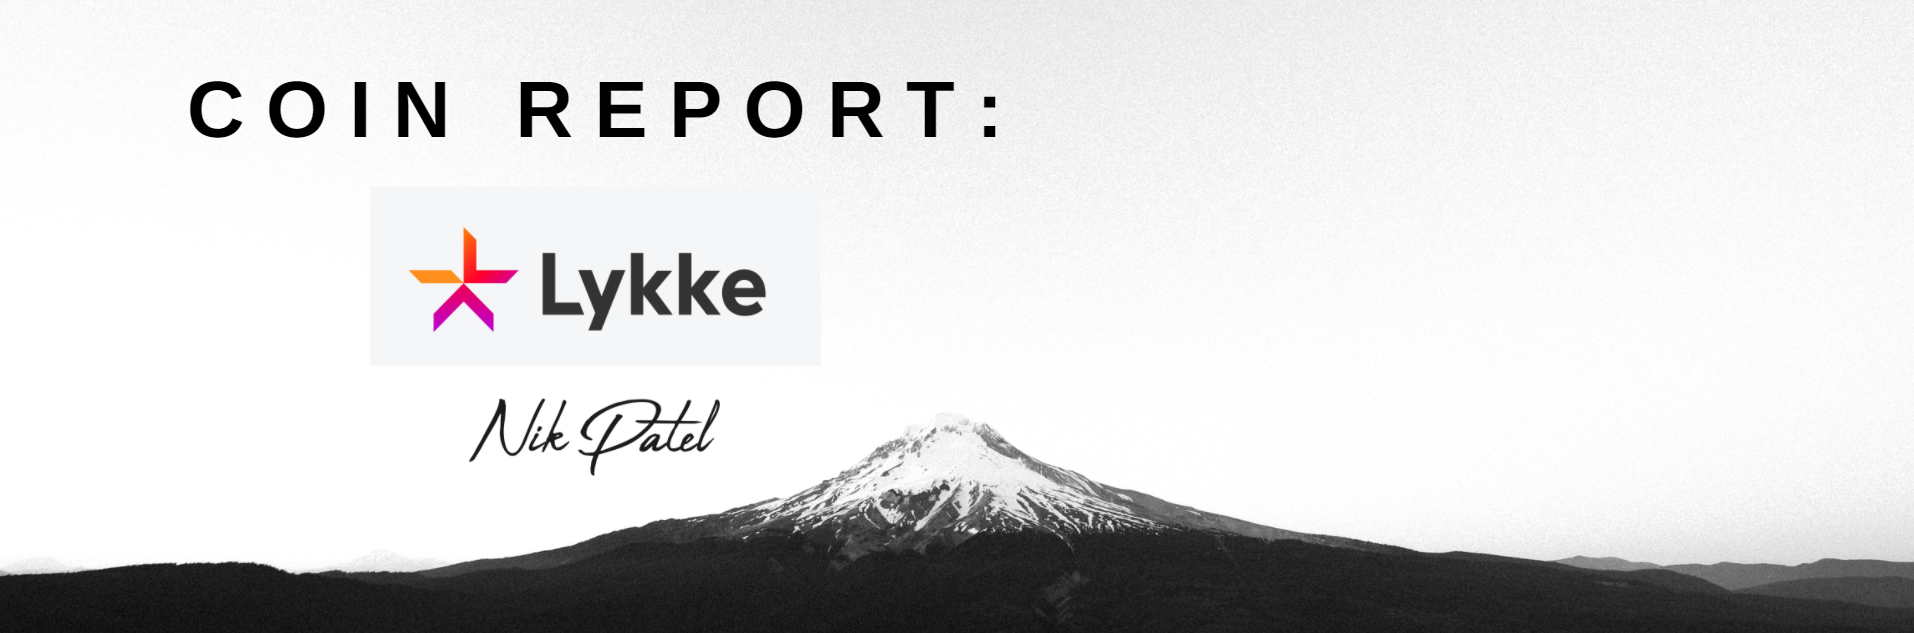 Coin Report #41: Lykke